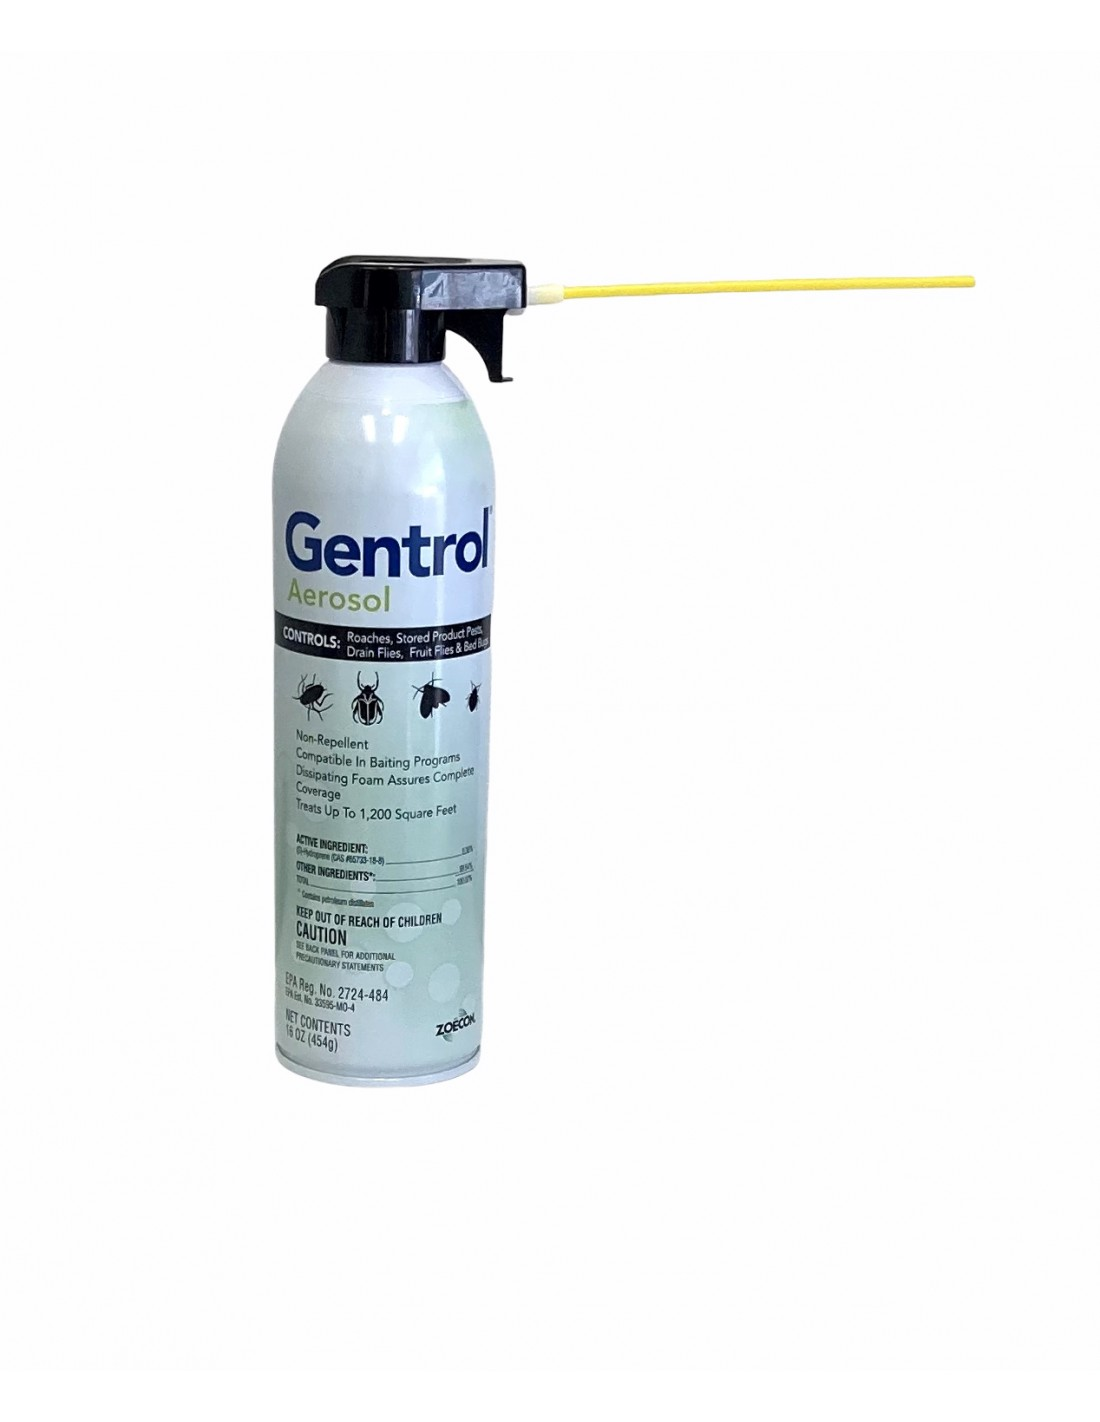 Can i put on gentrol aerosol then bedlam plus over it? Will they both work as will as sprayed alone?